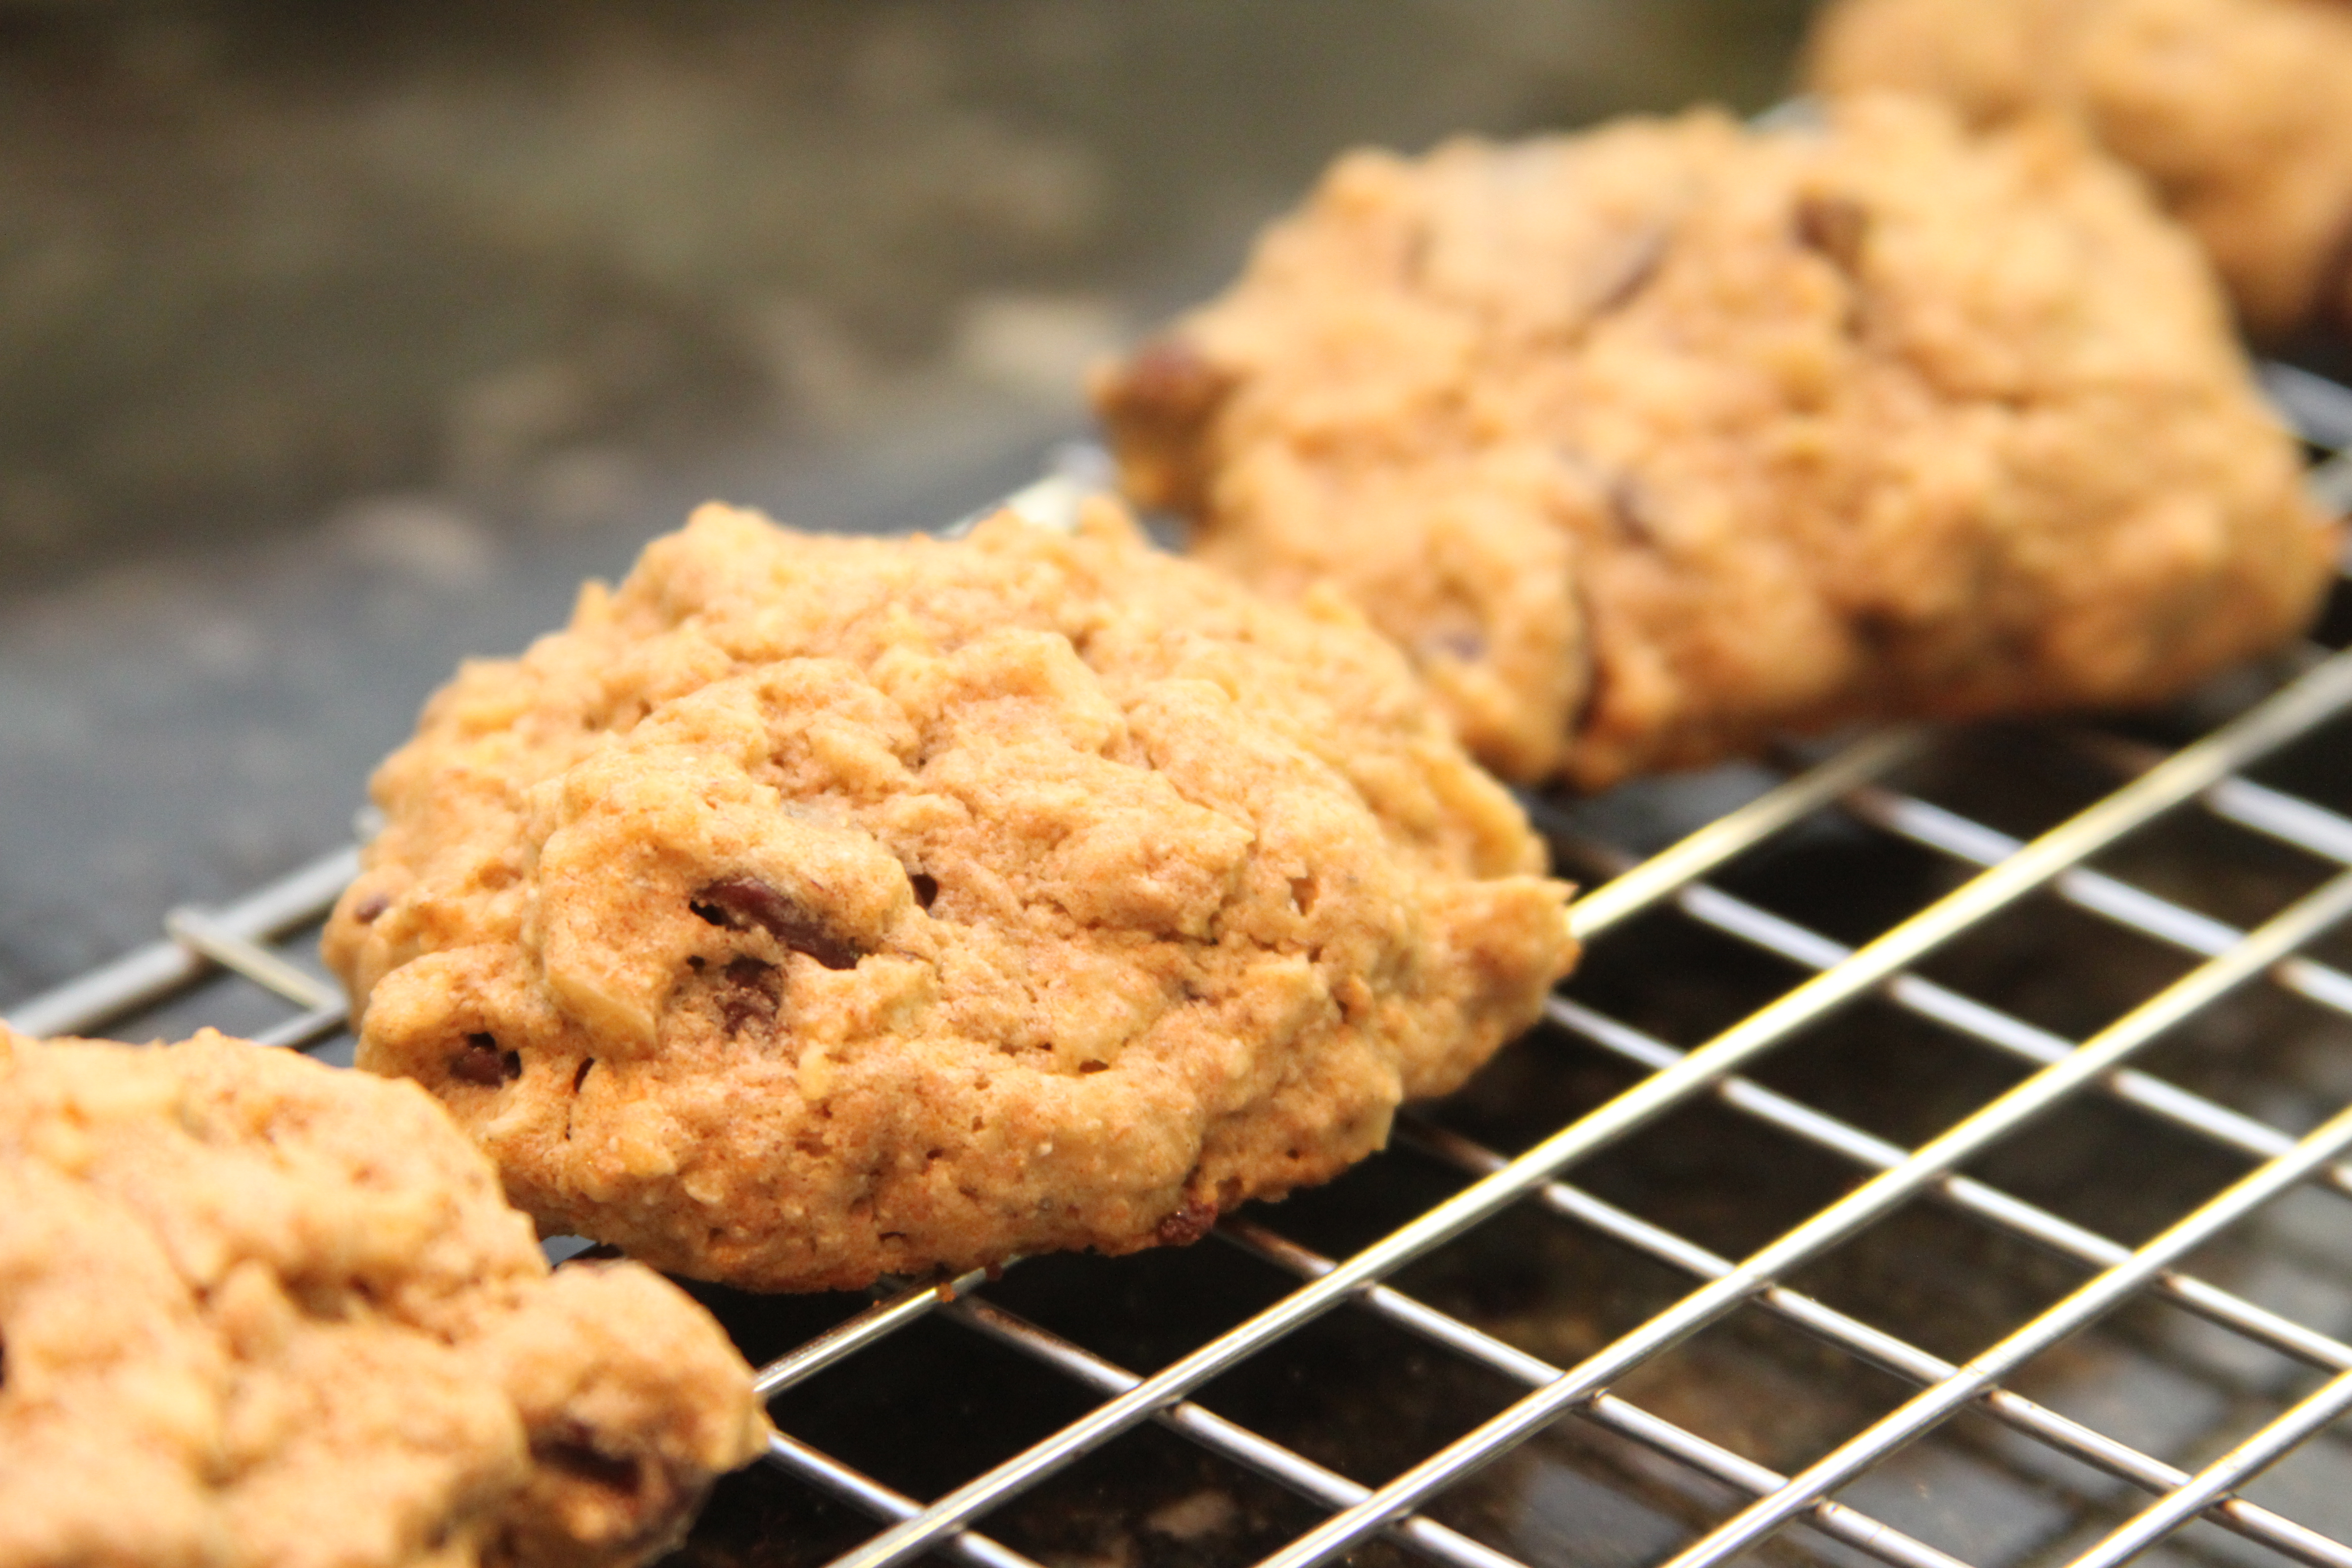 File:Banana oatmeal chocolate chip cookies.jpg - Wikimedia Commons